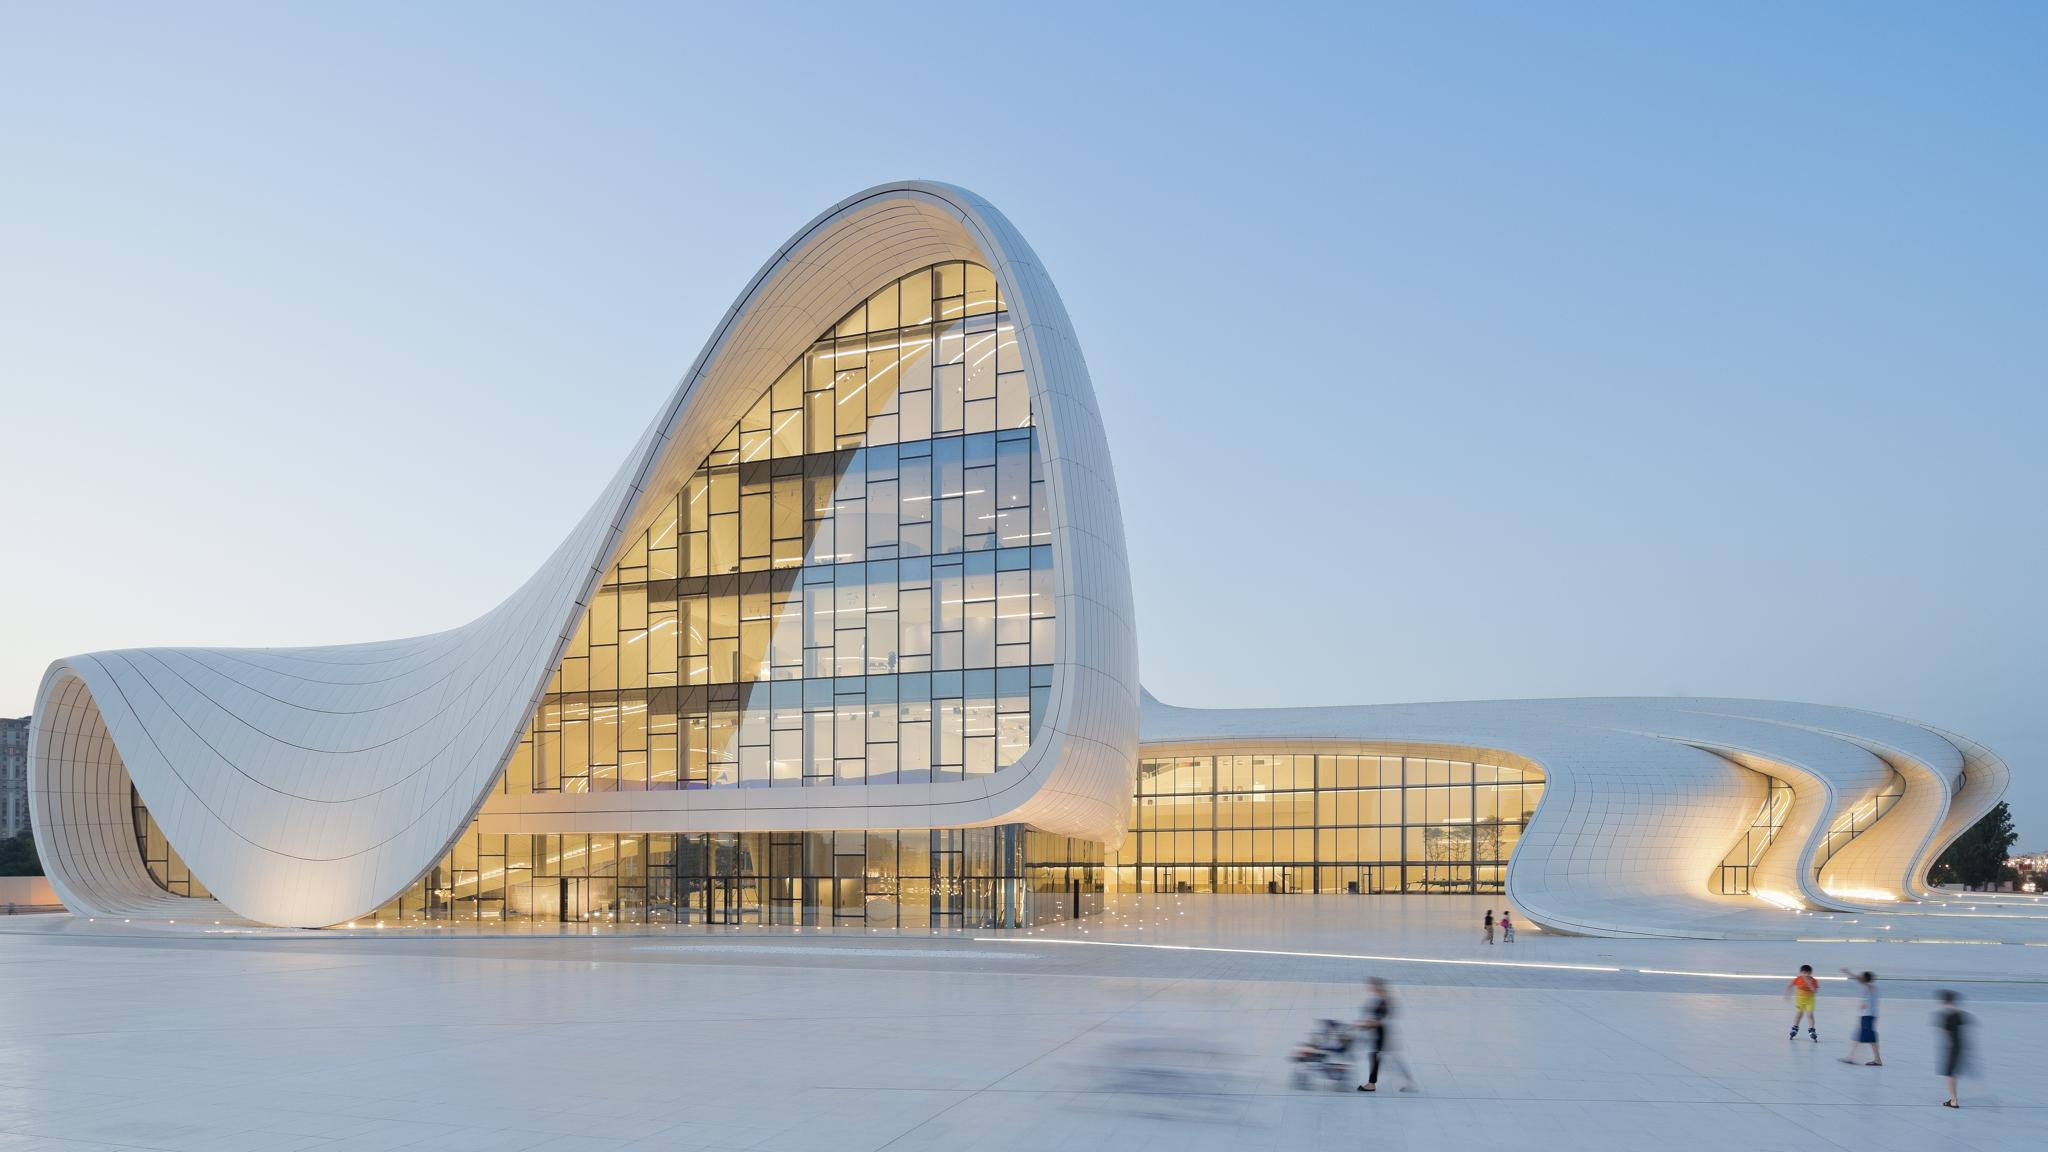 Home Design Game Help Design Award For Zaha Hadid Exposes Architects Moral Dilemma